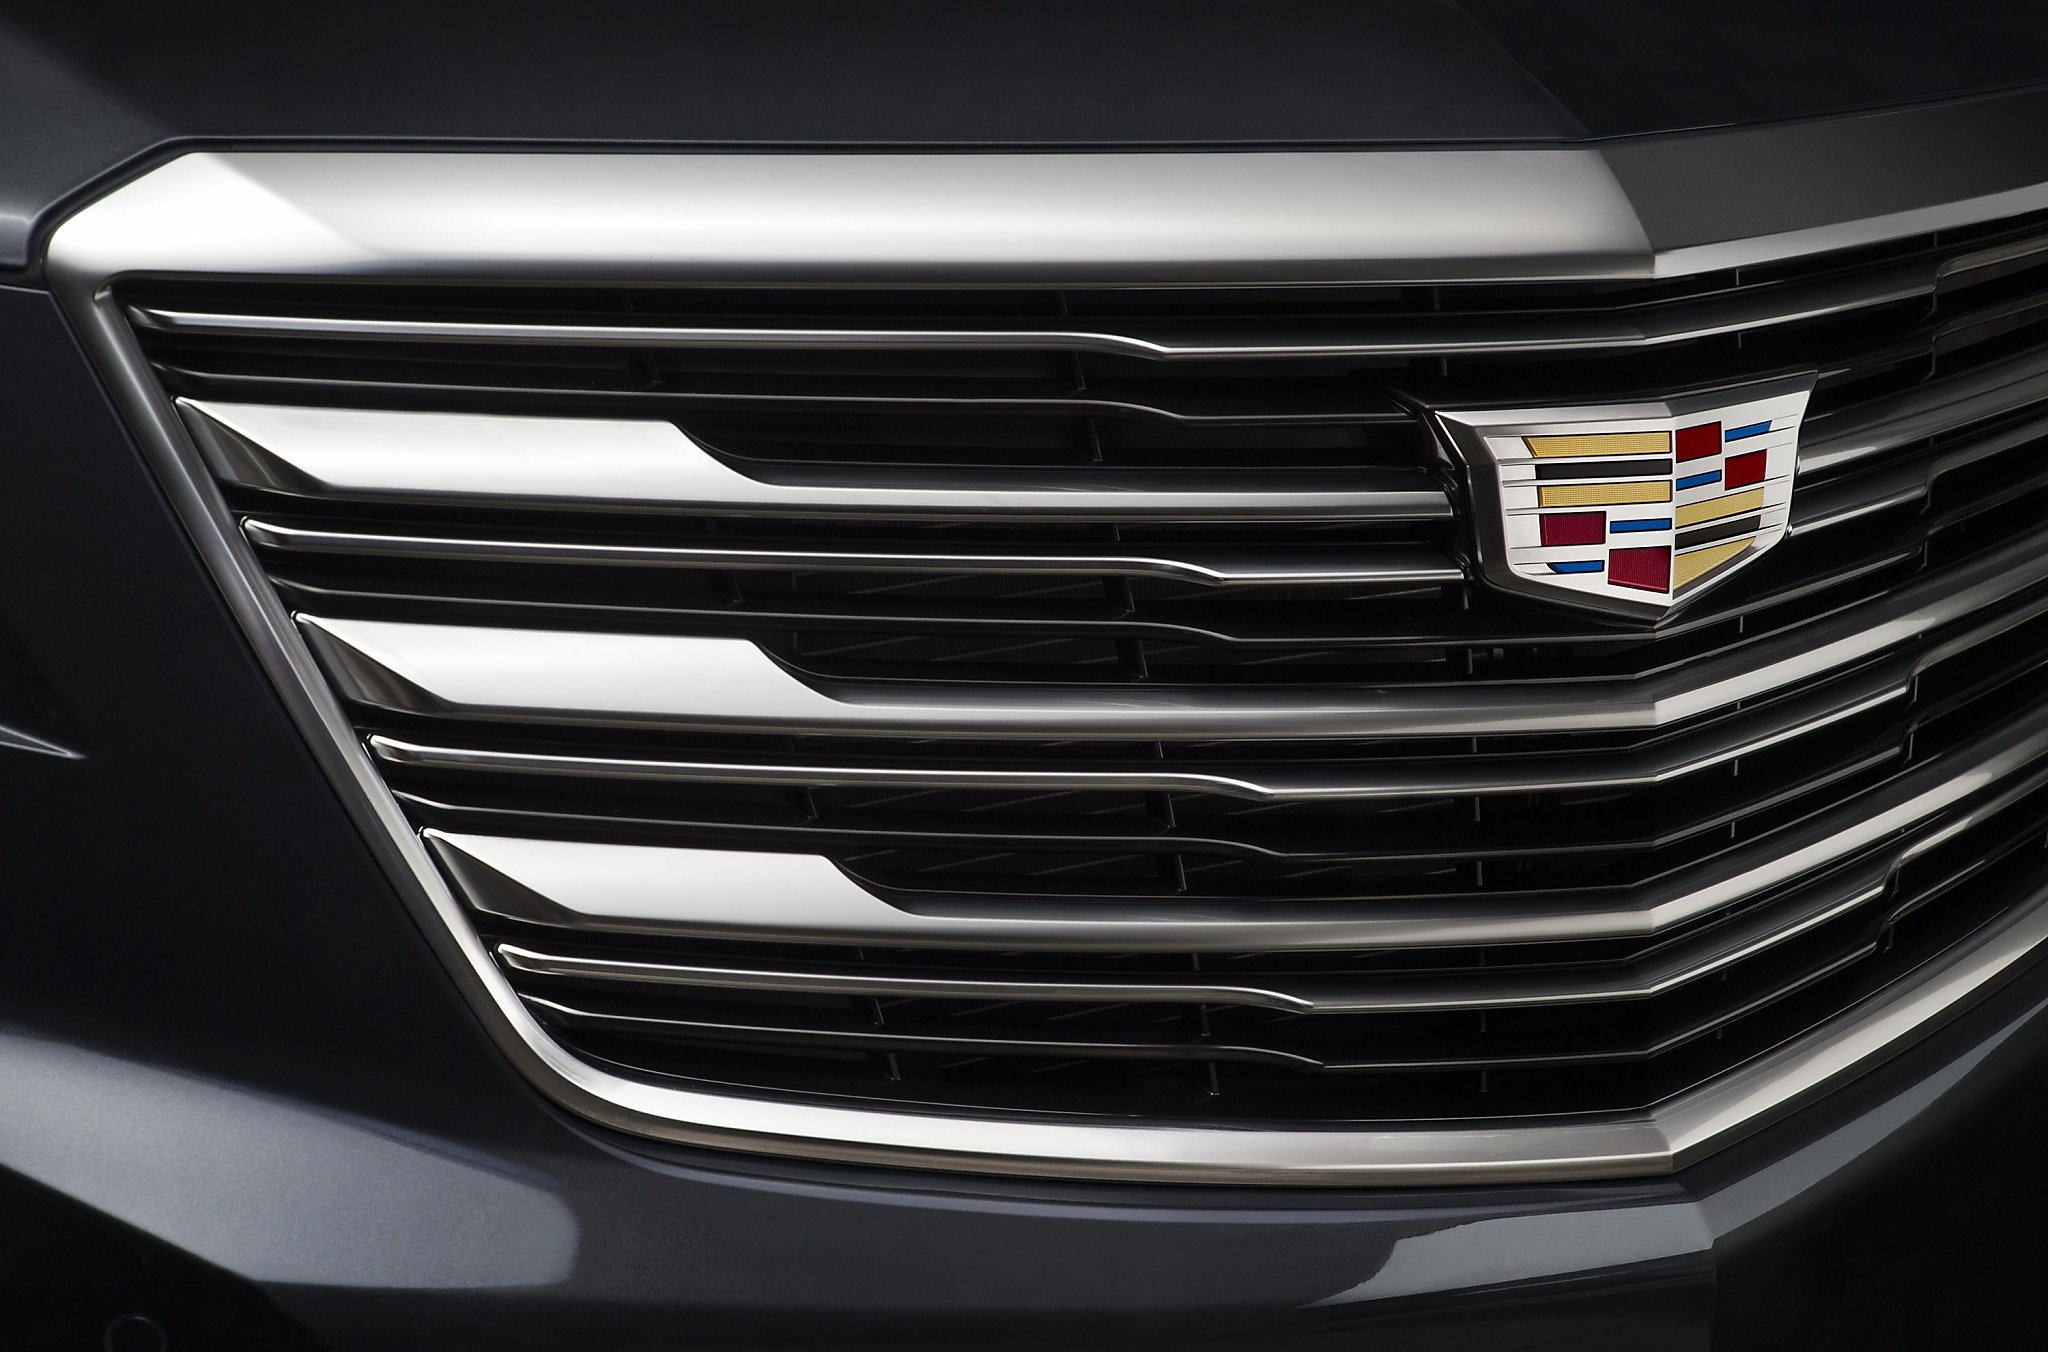 Cadillac condemns casting call that sought actors for 'alt